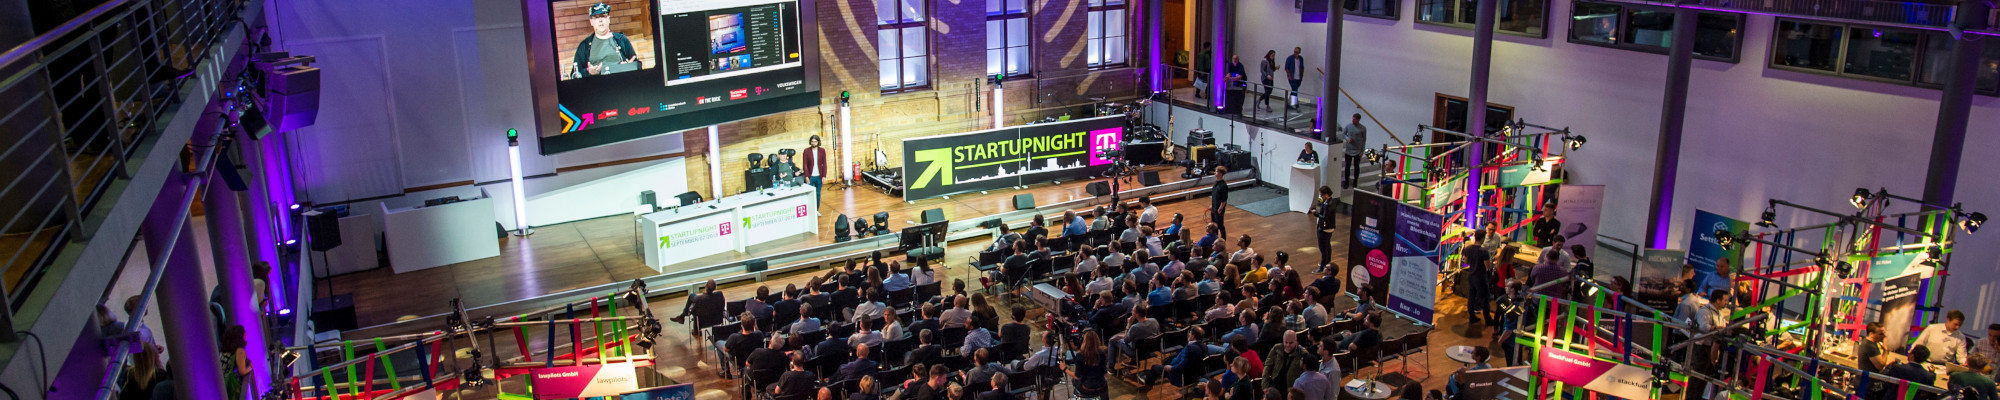 Startupnight 2019: The Only Night You Need